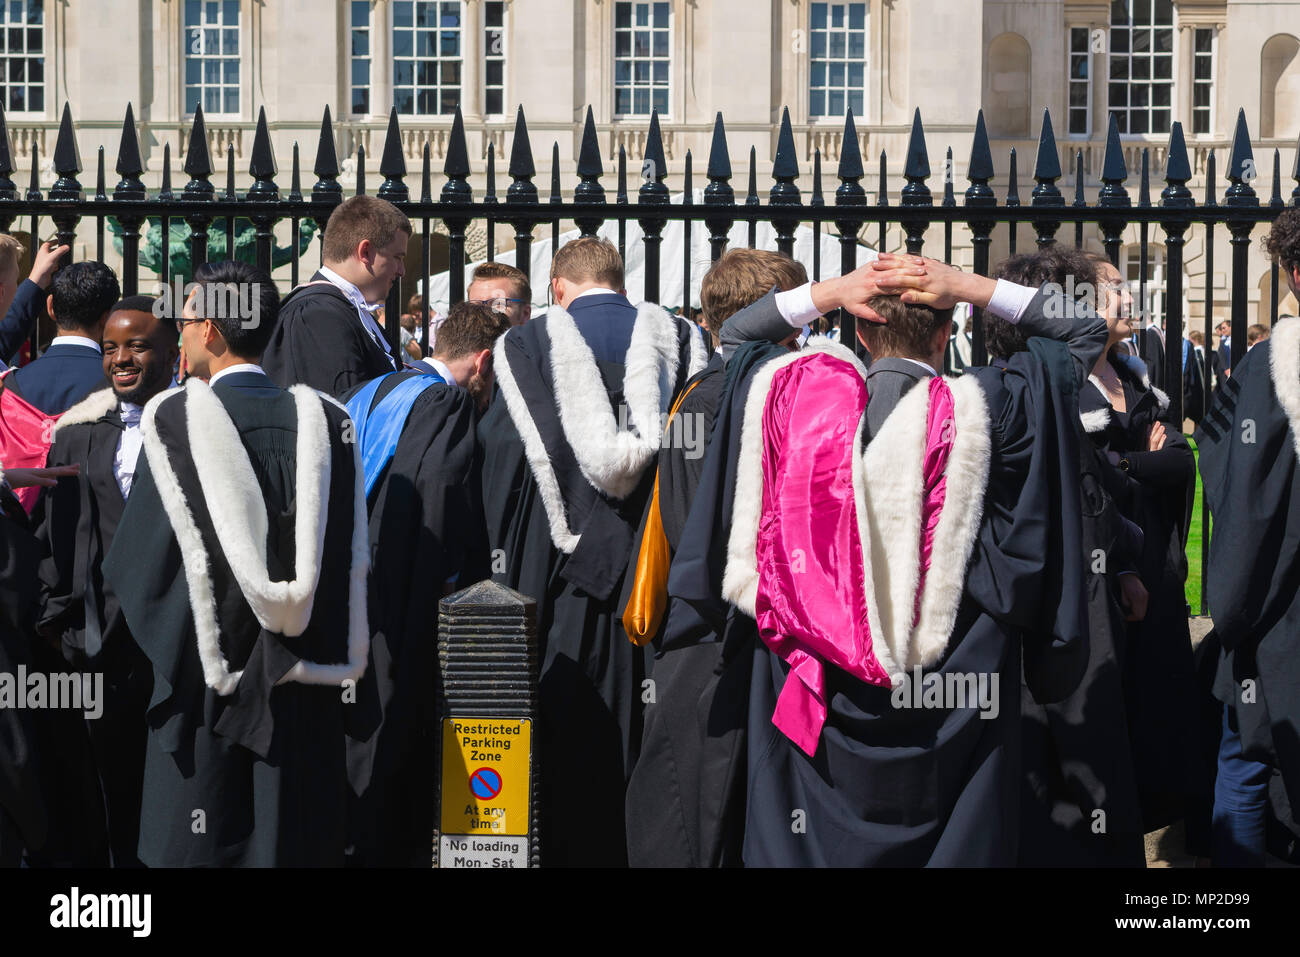 On graduation day Cambridge undergraduate students wear ceremonial gowns whose colorful hoods identify the college they have attended, England, UK. - Stock Image